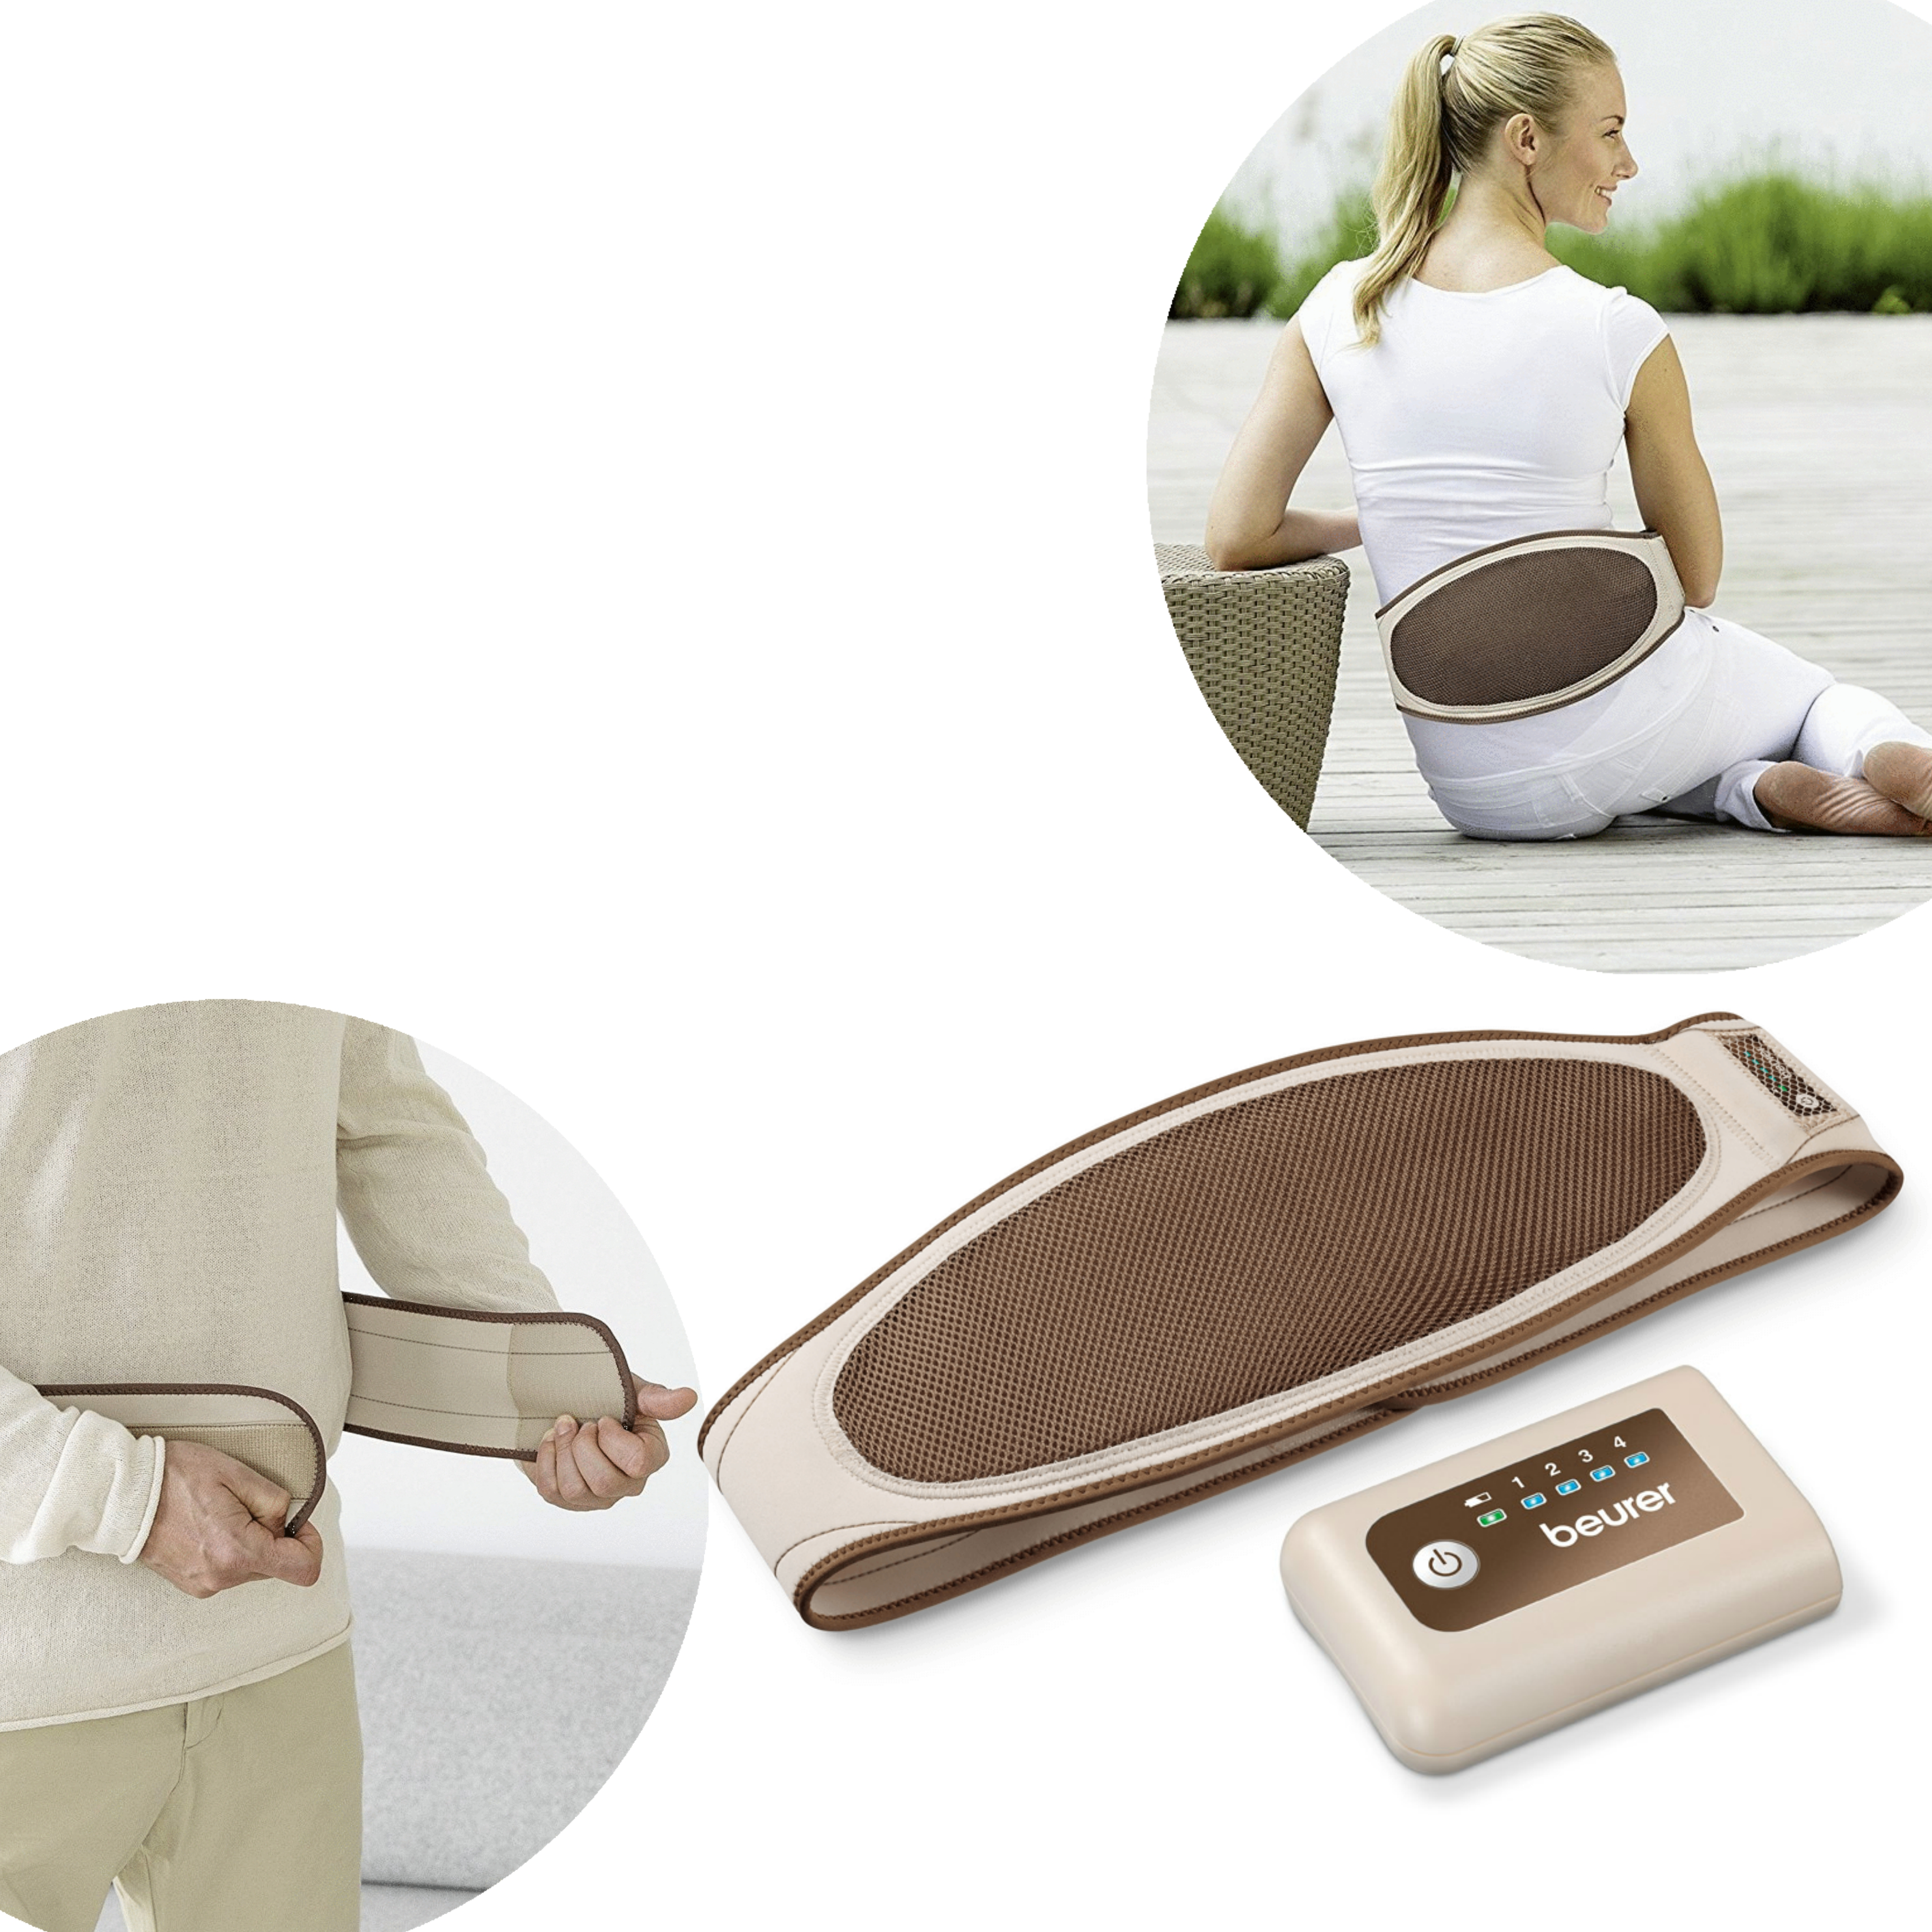 Beurer HK72 Mobile Chargable Heating Belt Pad for Abdominal & Back Pain Relief